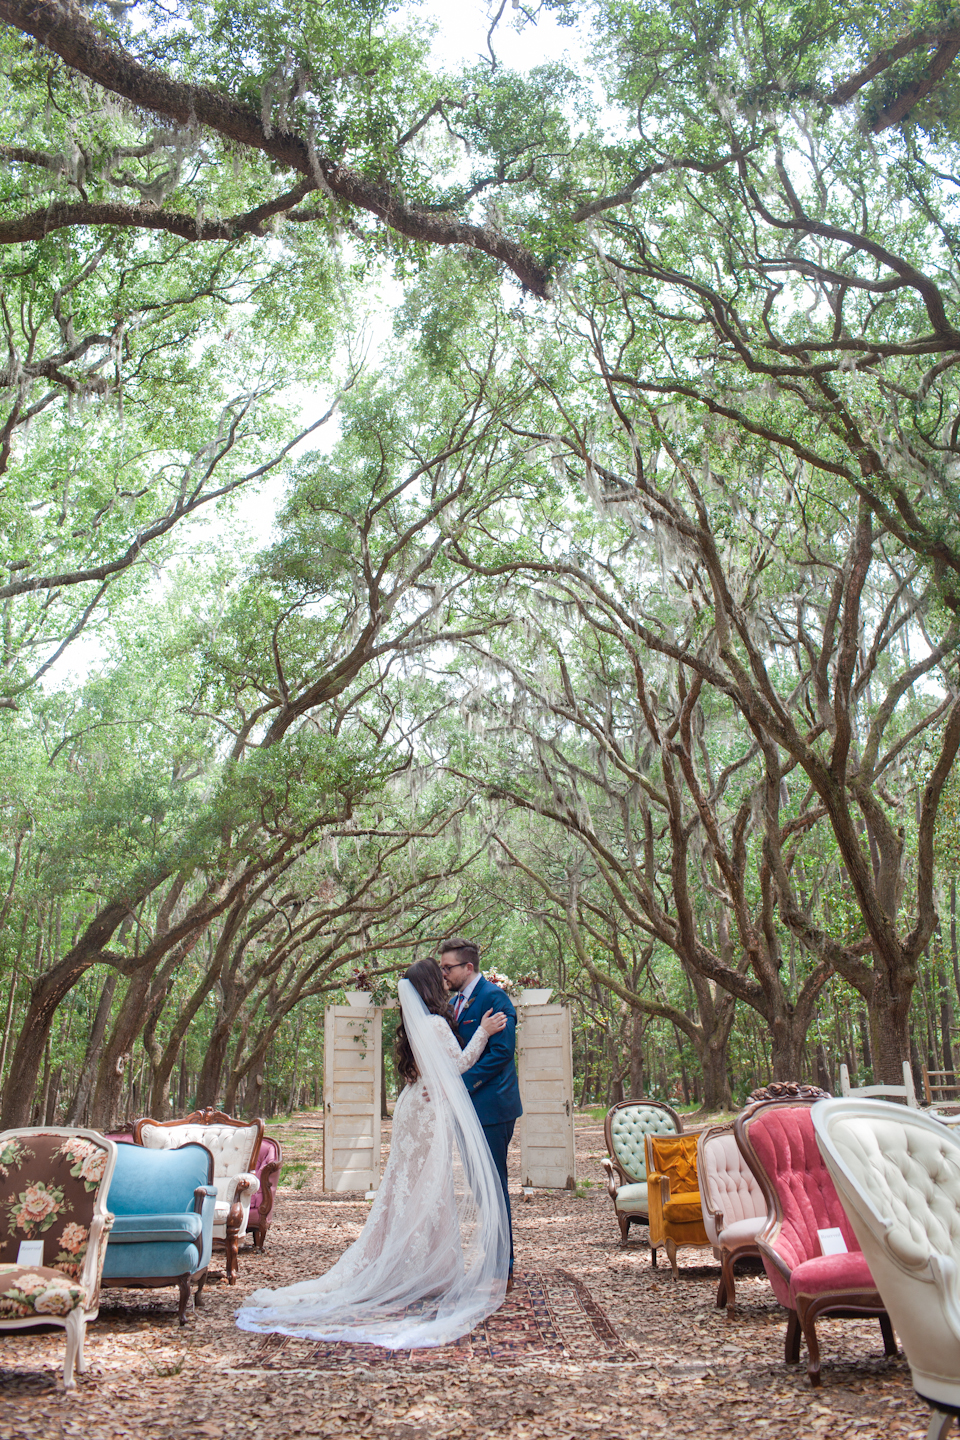 savannahweddingphotographercharlestonweddingphotographerwormsloewedding26.jpg